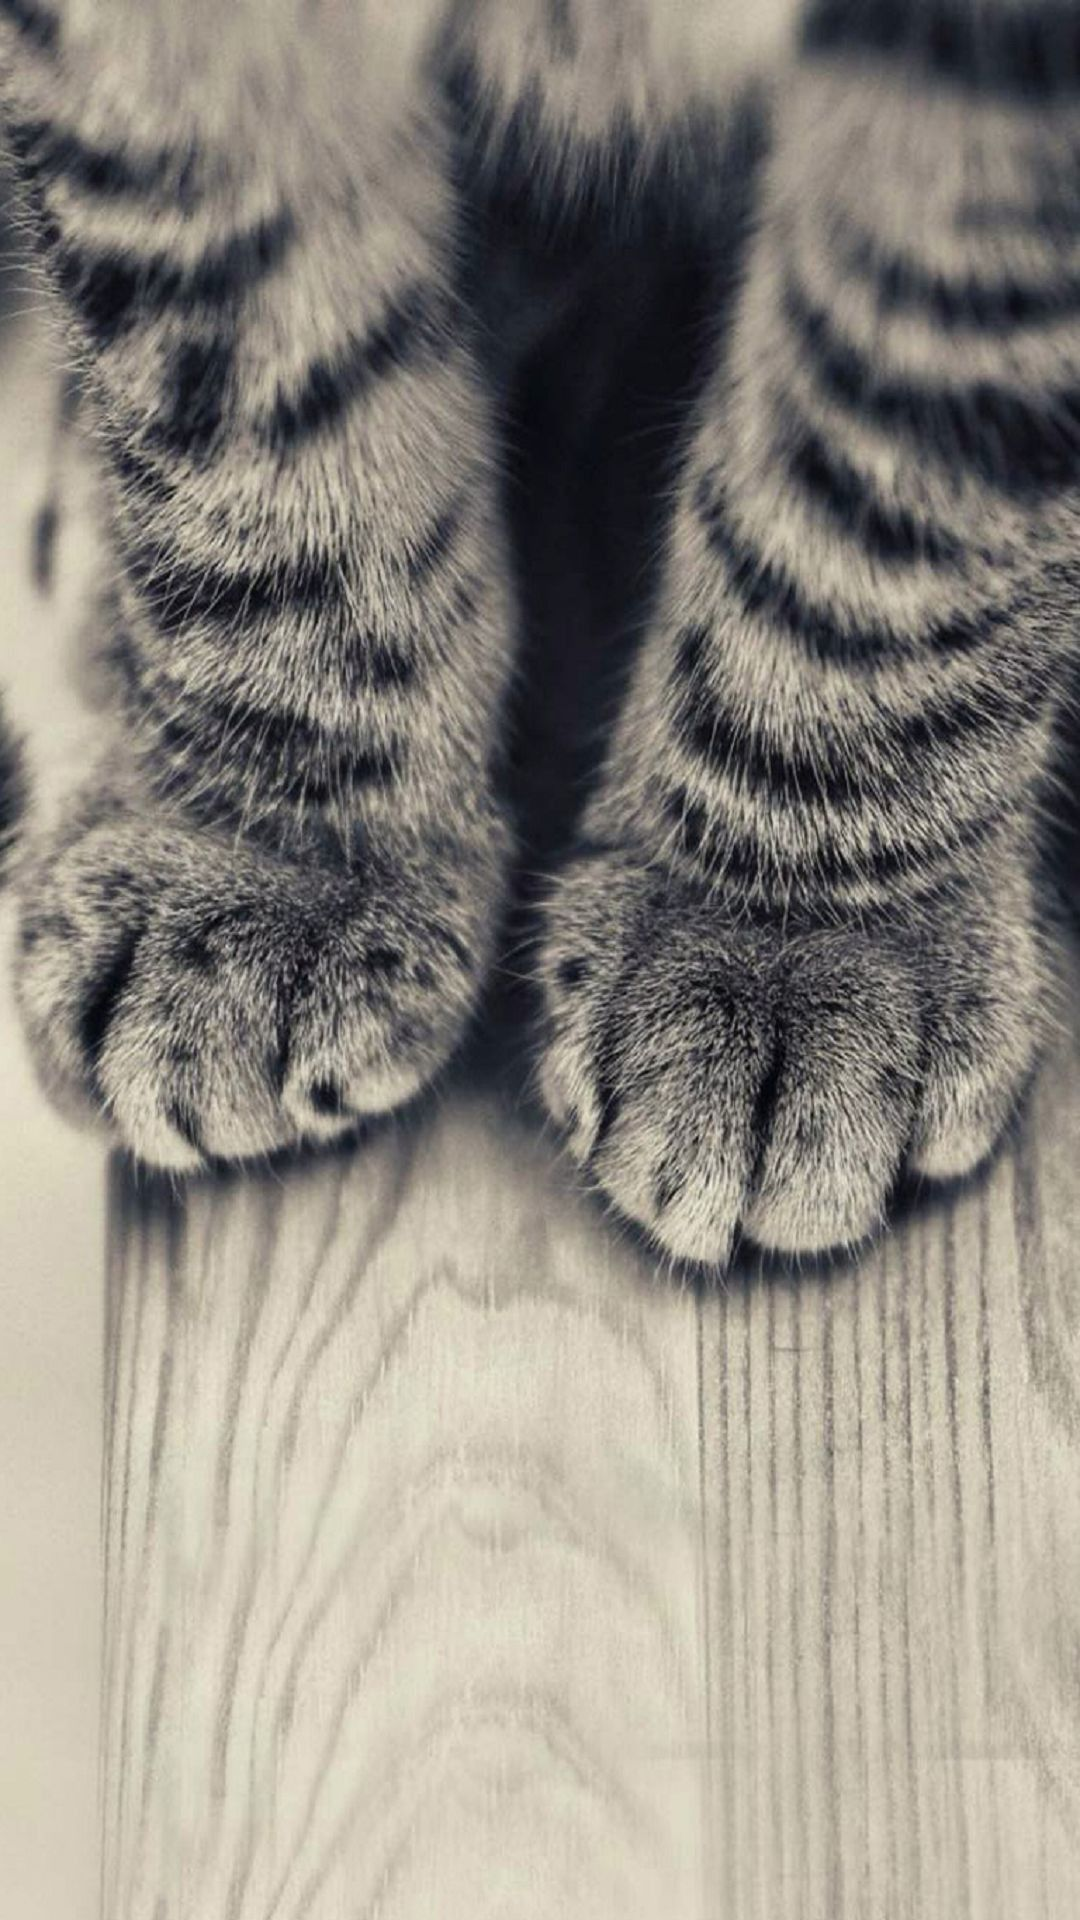 Animals Iphone 6 Plus Wallpapers Striped Kitten Legs Wooden Floor Iphone 6 Plus Hd Wallpaper Iphone 6 Plus Kitten Wallpaper Cat Wallpaper Animal Wallpaper